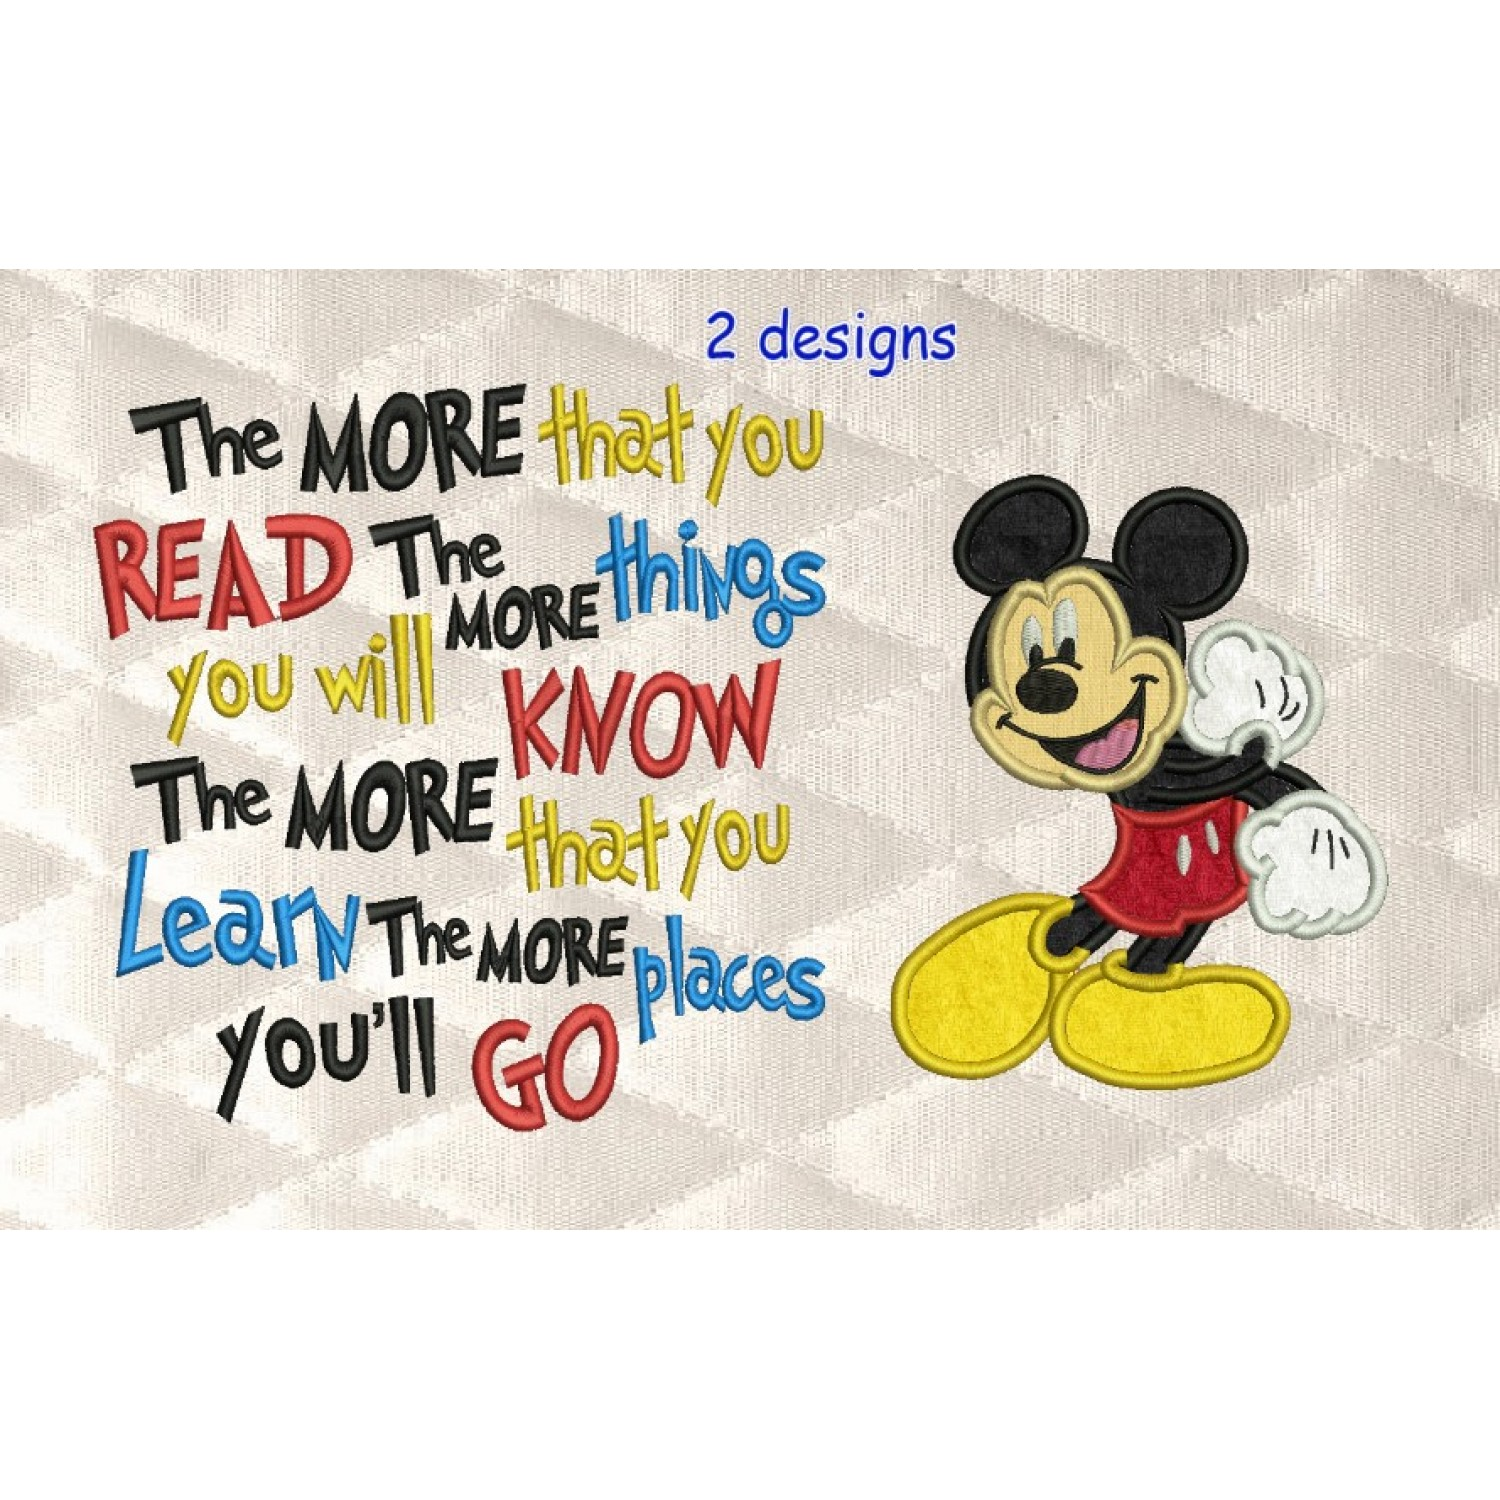 Mickey Mouse with the more that you read designs